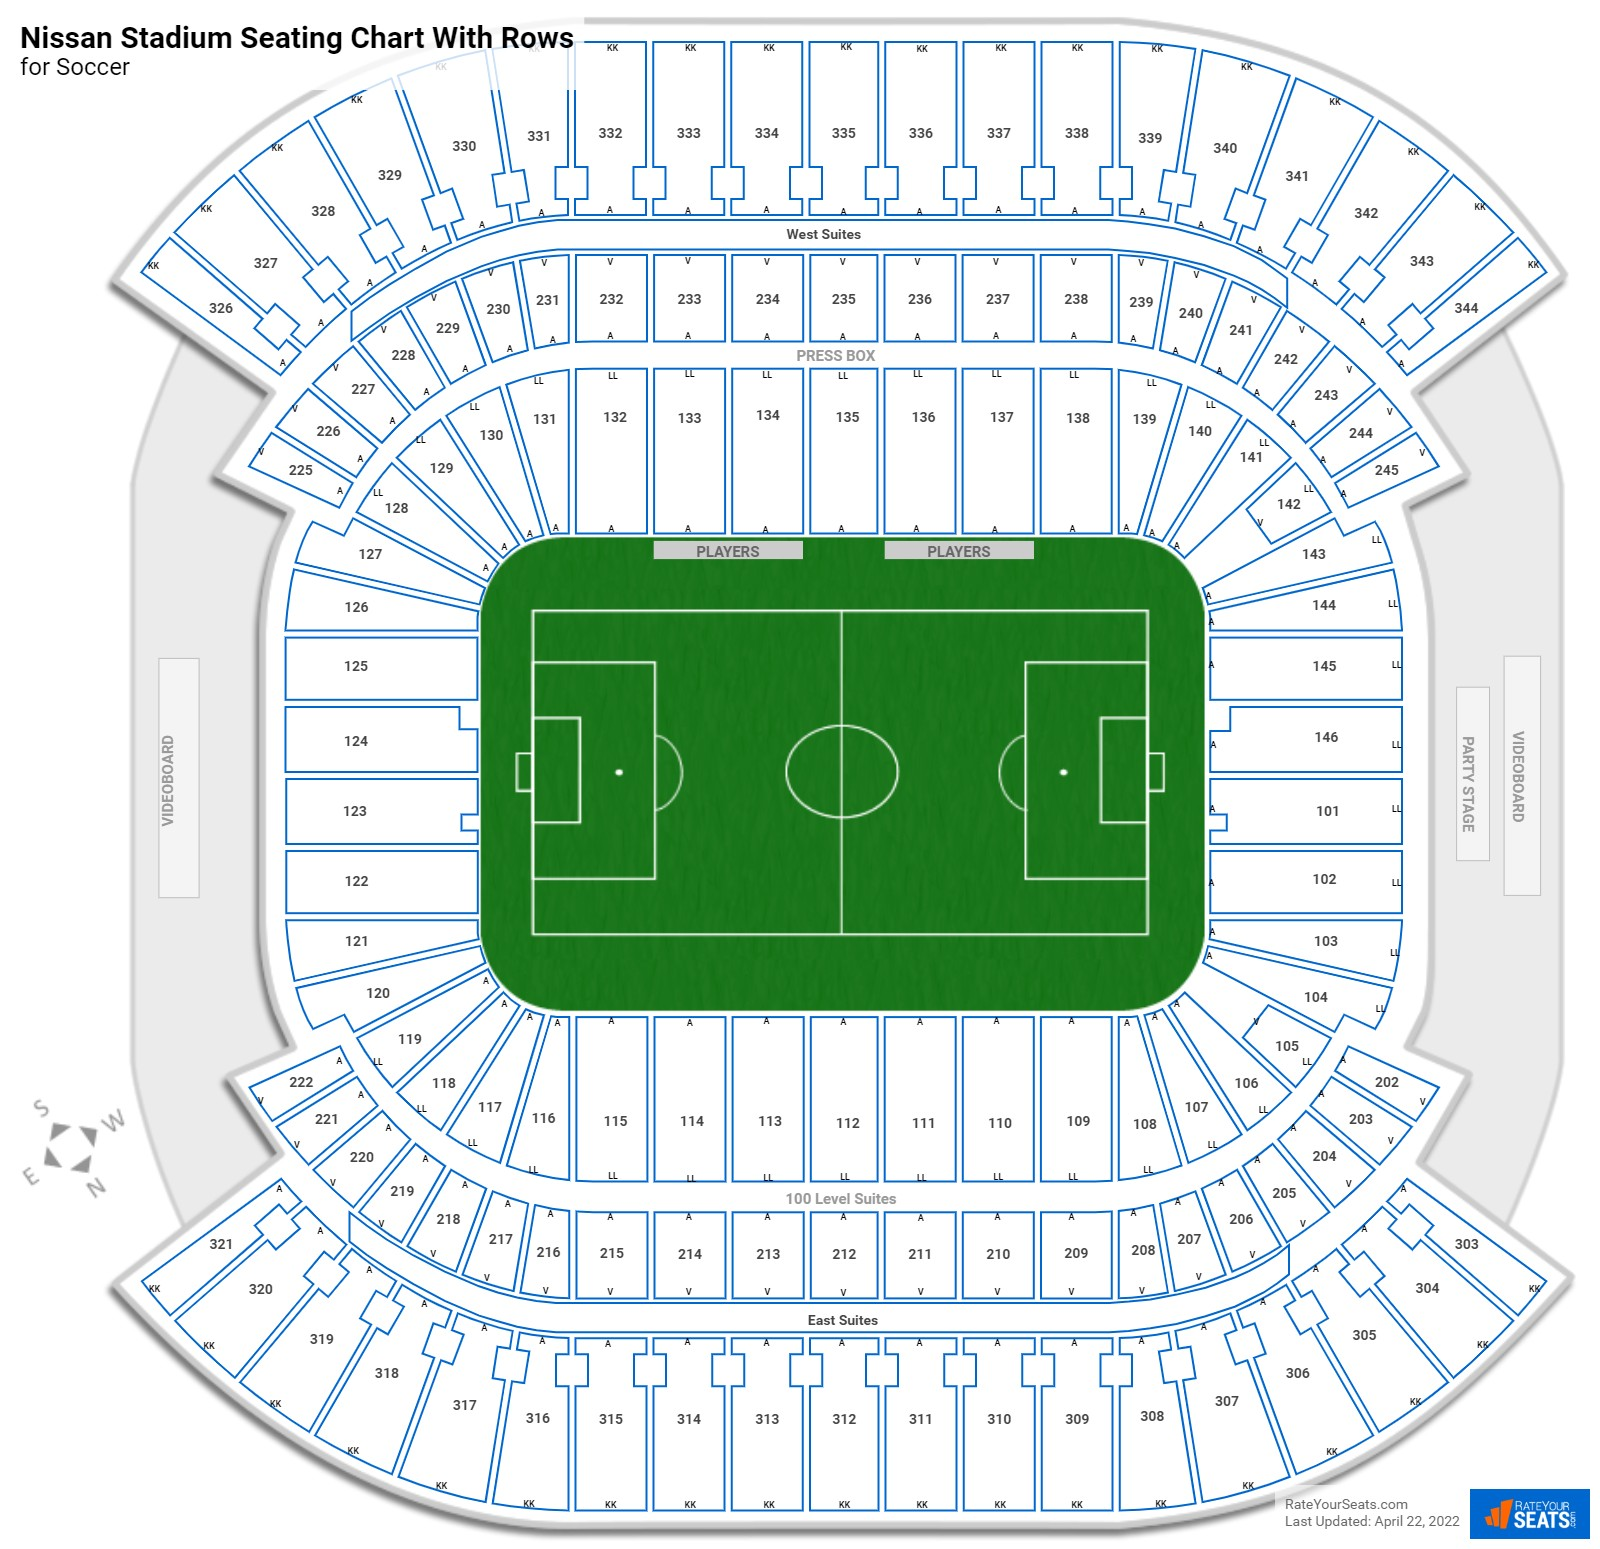 Nissan Stadium seating chart with rows soccer